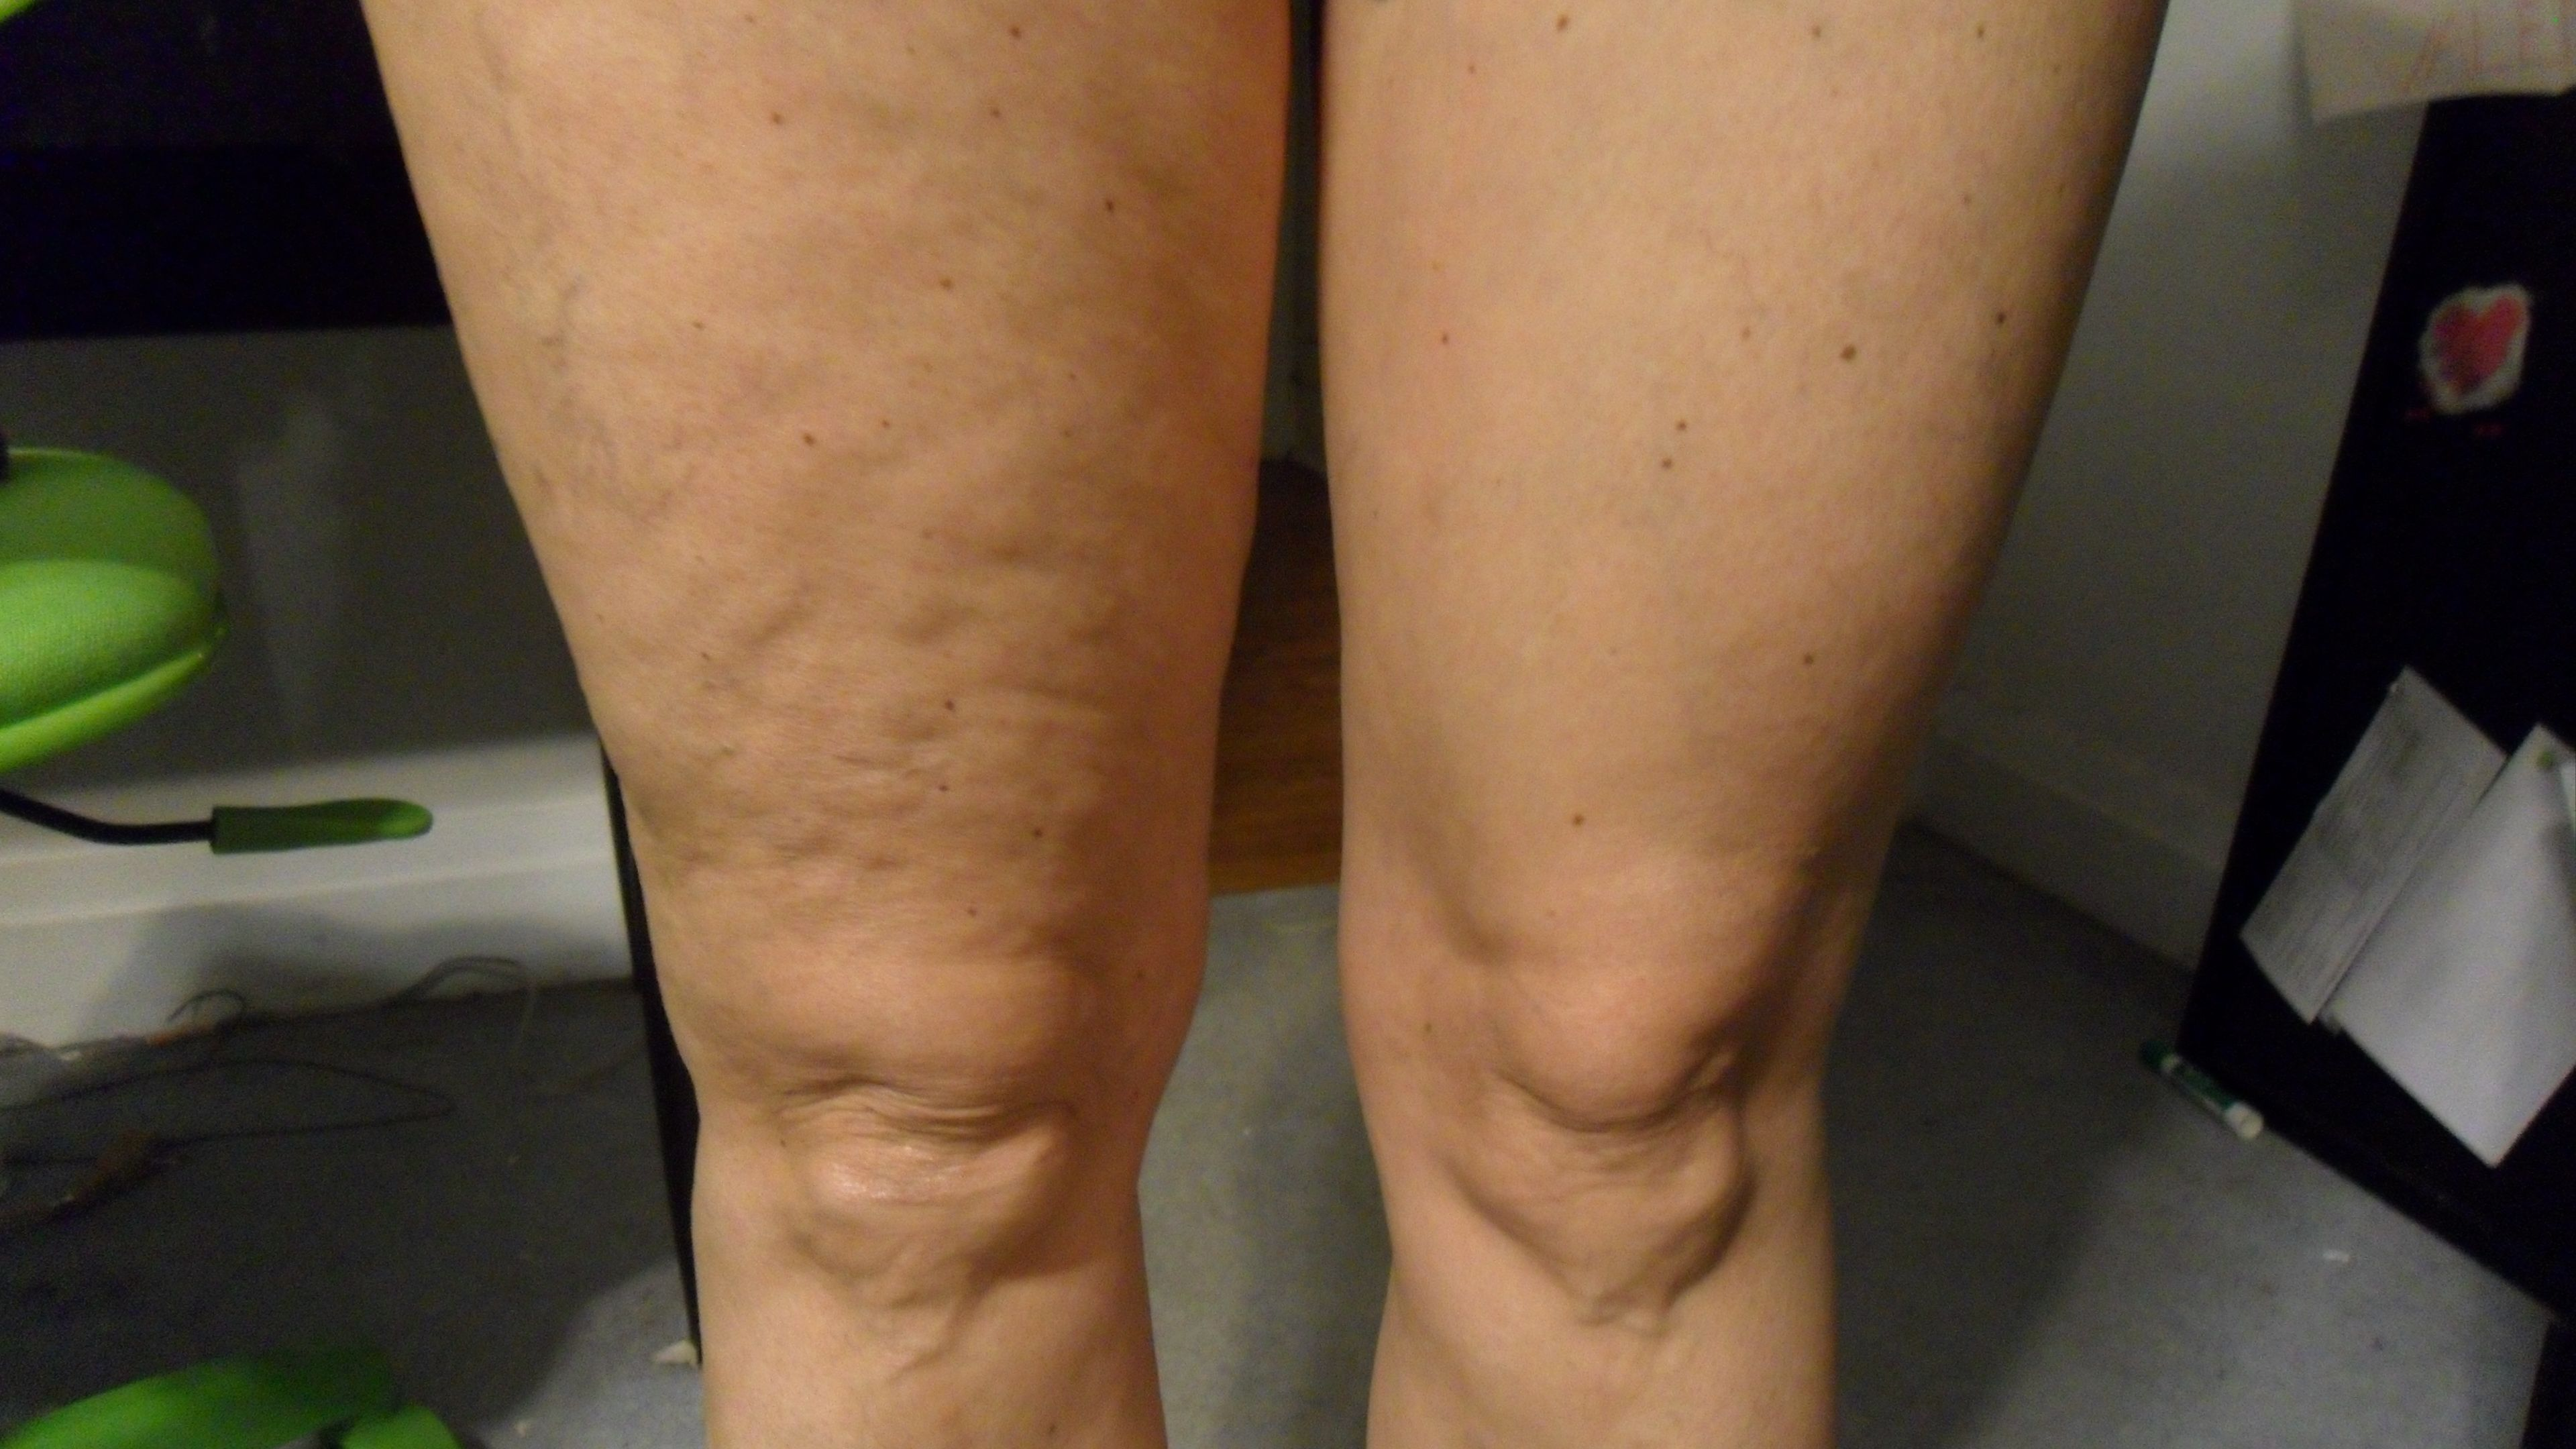 Used the galvanic body spa twice a week for weeks ten minutes each